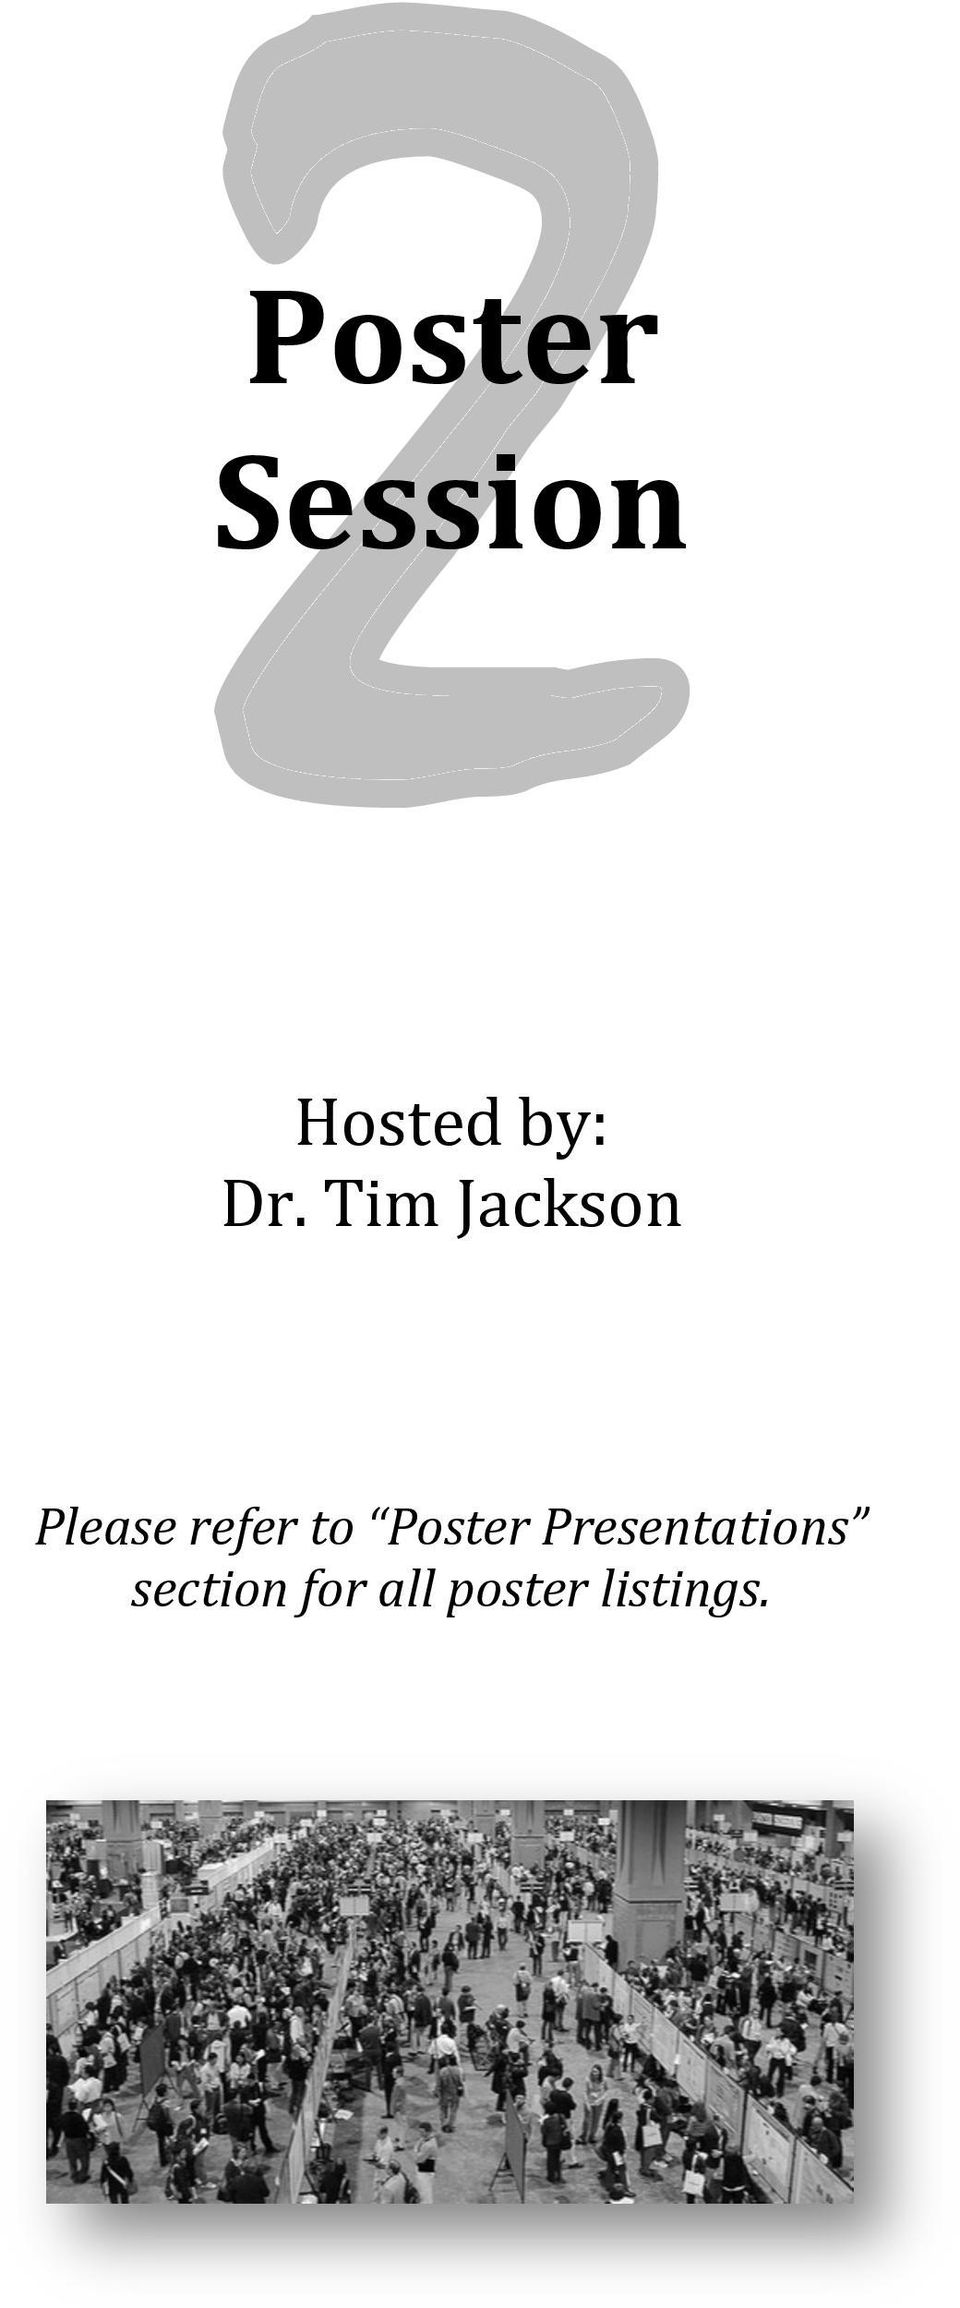 to Poster Presentations